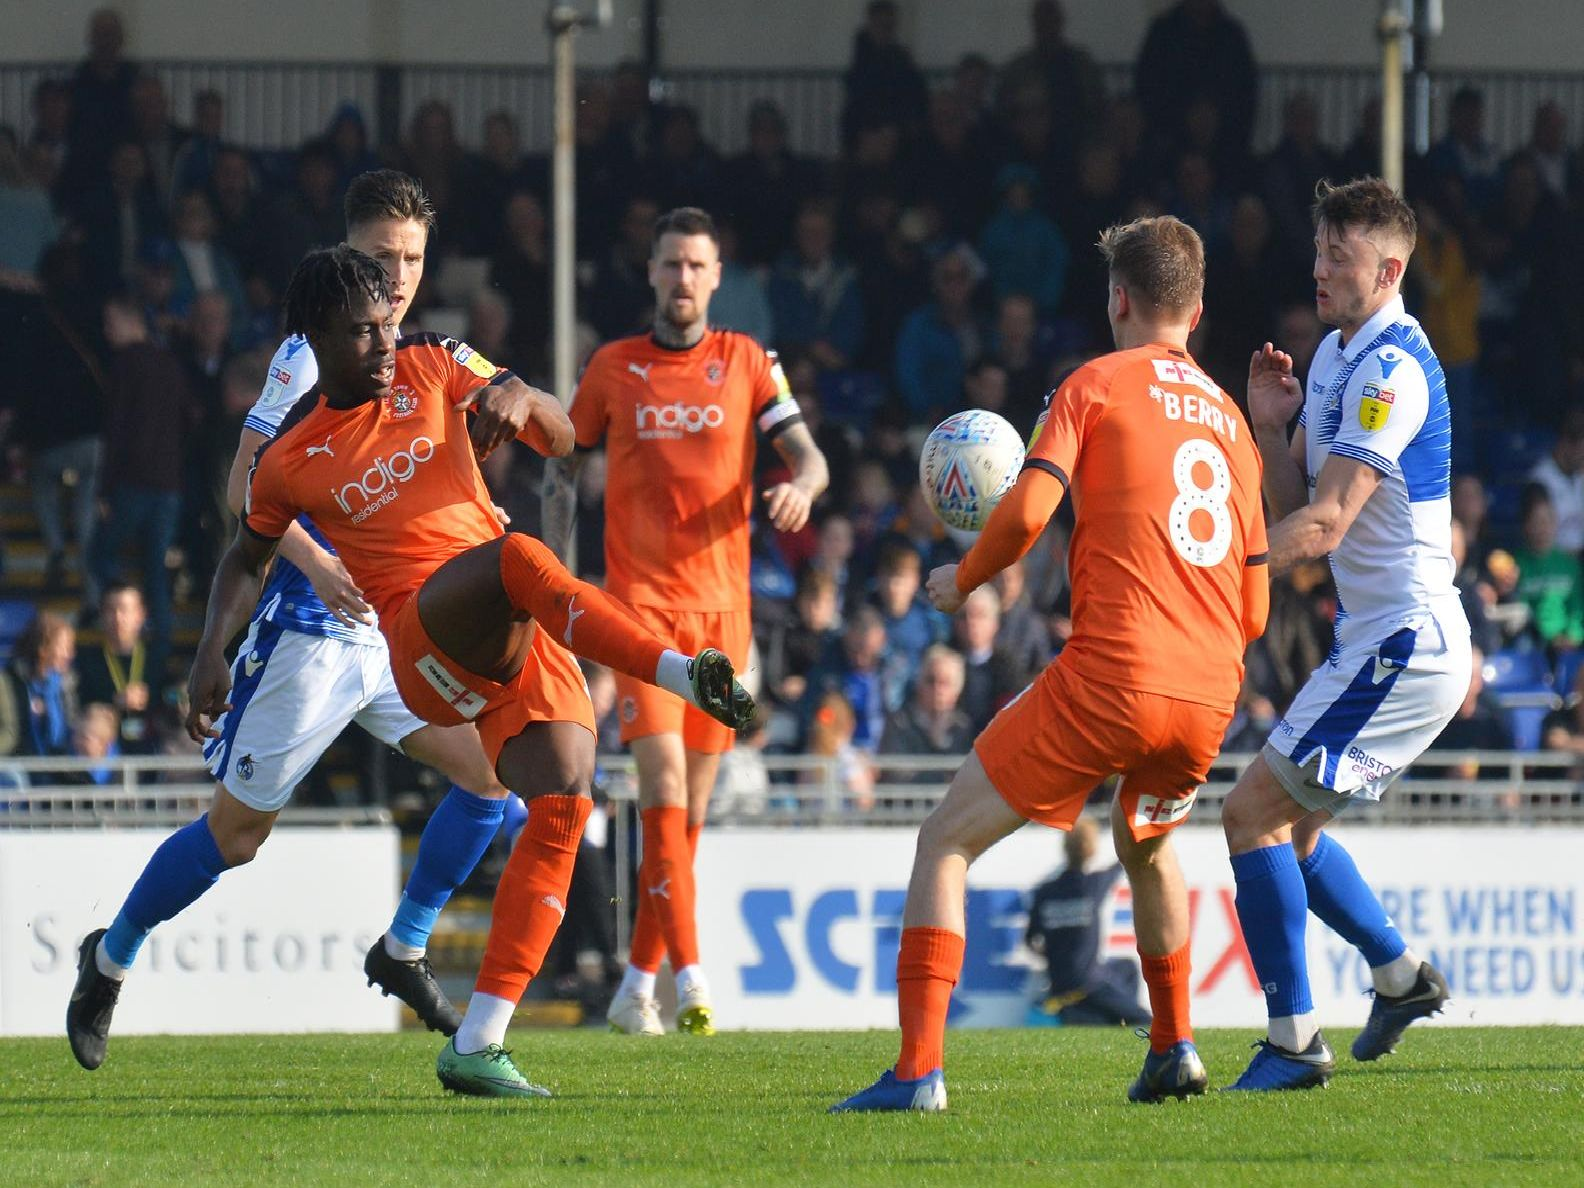 Pelly-Ruddock Mpanzu keeps the ball moving on his 200th appearance for the Hatters at Bristol Rovers on Saturday